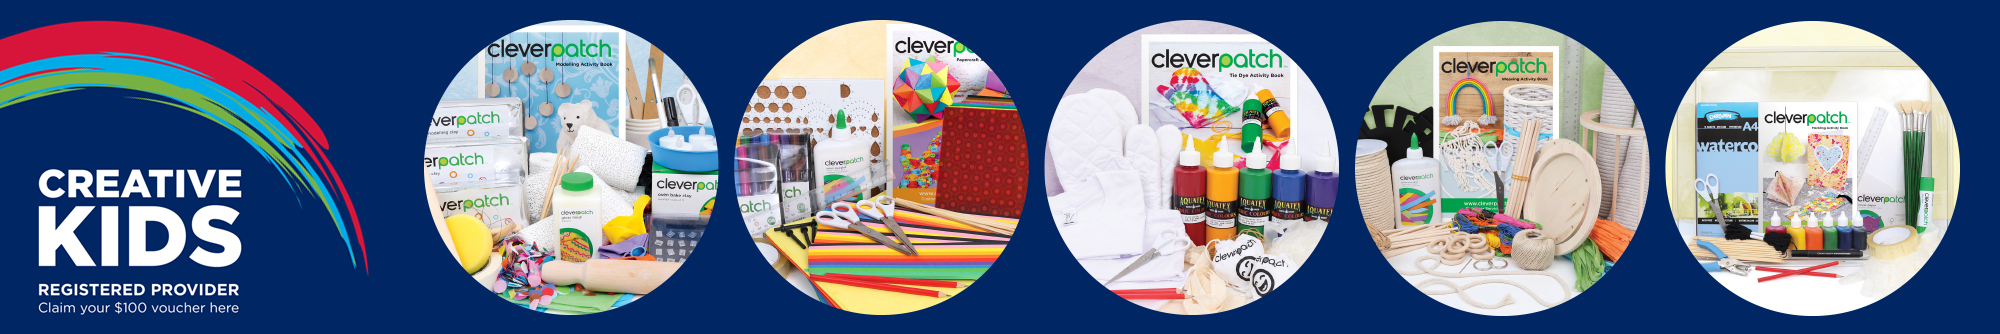 CleverPatch Creative Kids - Overview Image